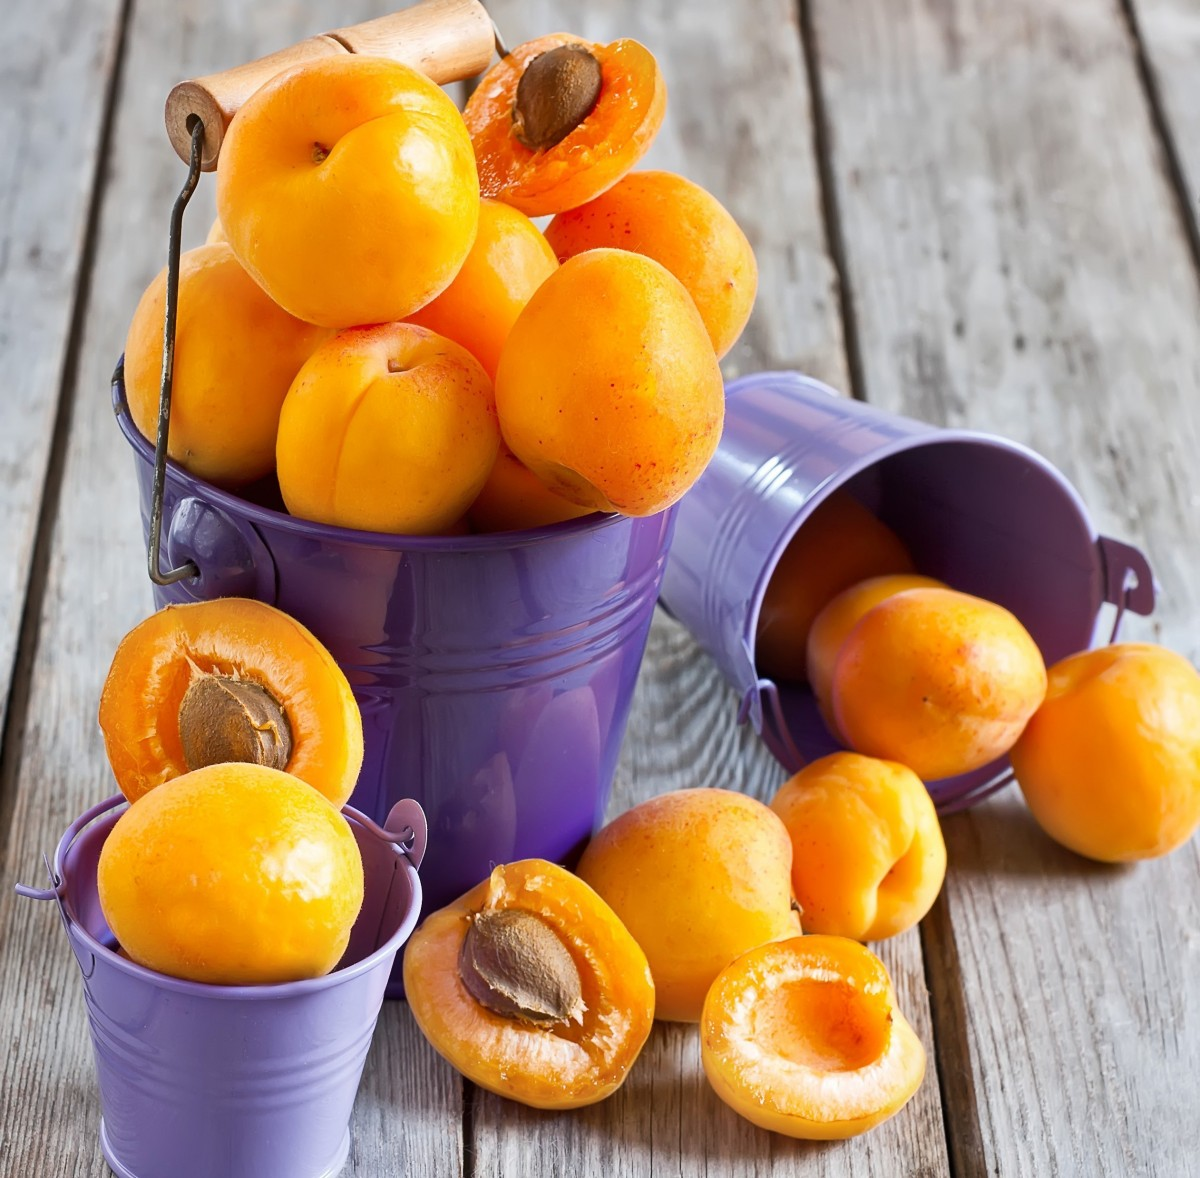 Jigsaw Puzzle Solve jigsaw puzzles online - Apricots and buckets